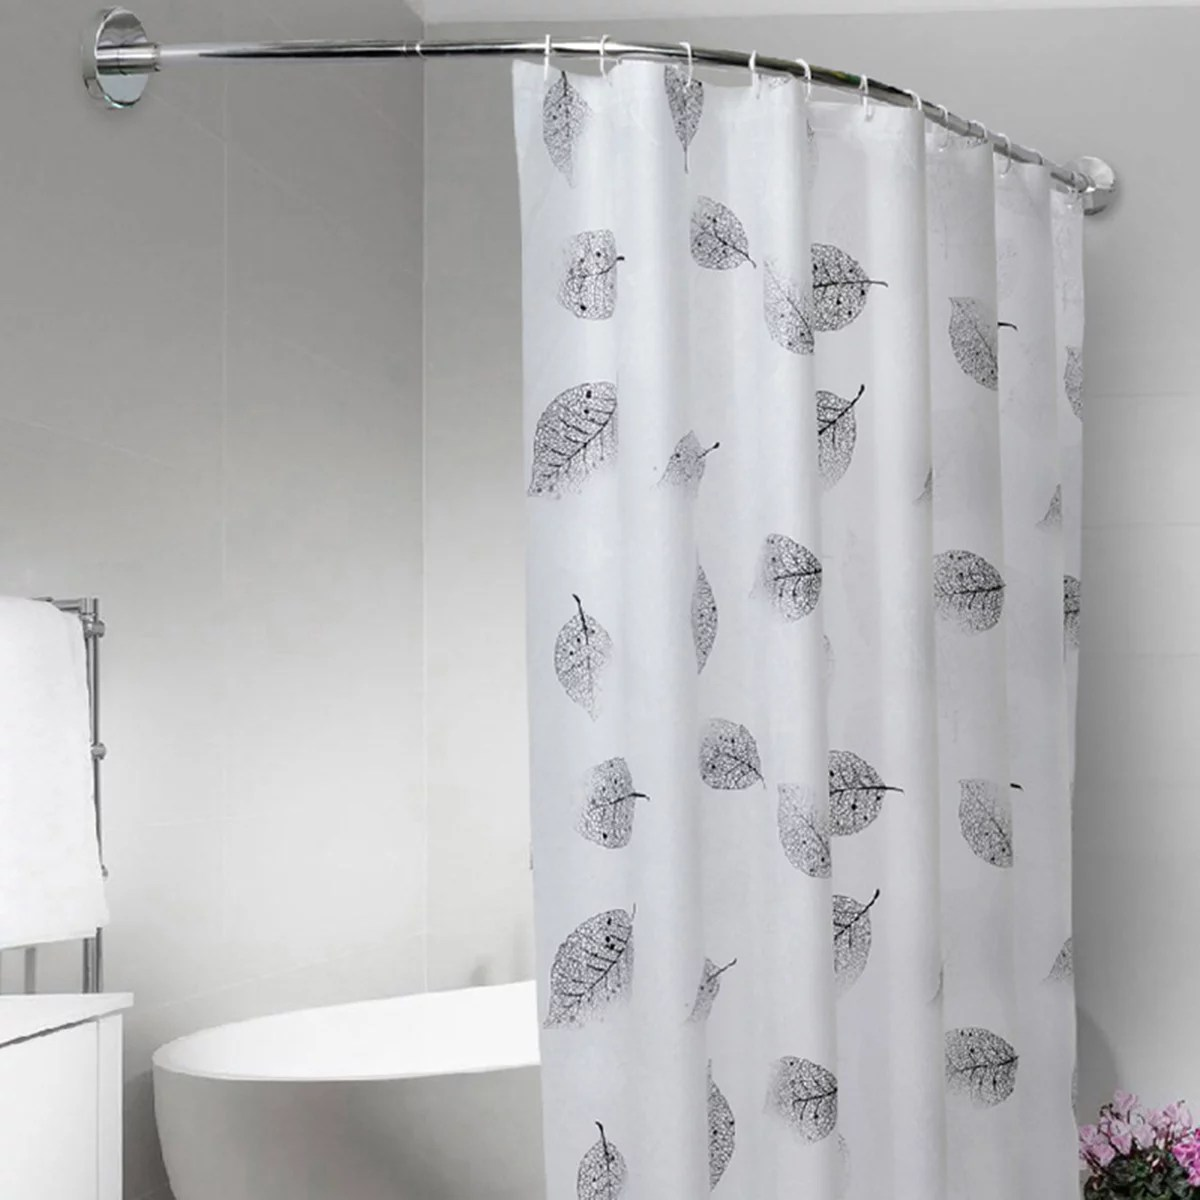 extendable corner curved shower curtain rod pole adjustable 40 64 inch no punching rail rod with 12 hooks shower curtain and glue are not included